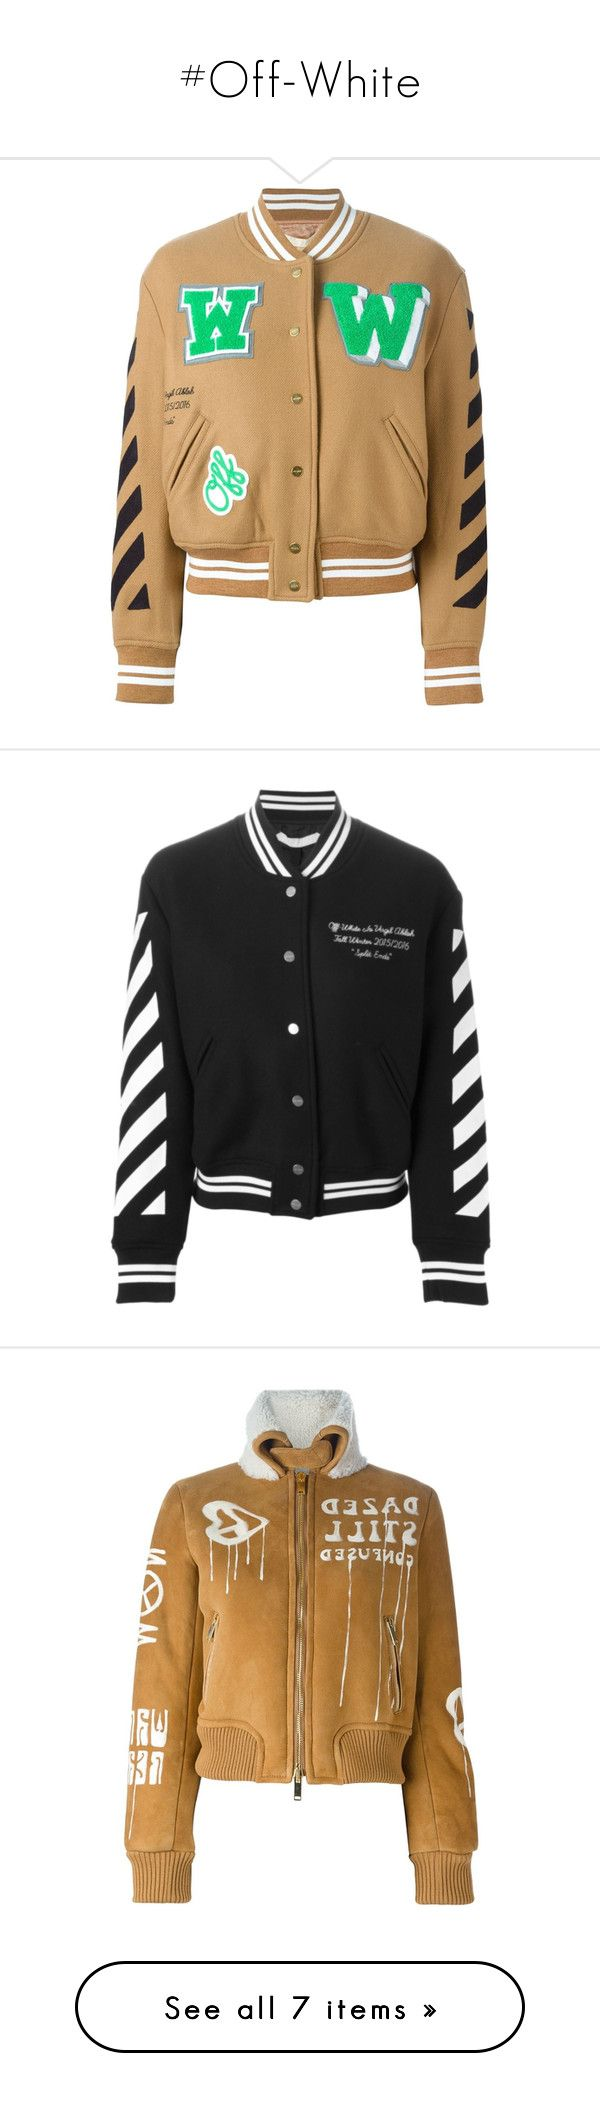 """#Off-White"" by lolgenie ❤ liked on Polyvore featuring outerwear, jackets, off white jacket, letterman jackets, varsity jacket, college jacket, striped jacket, black, bomber style jacket and bomber jacket"